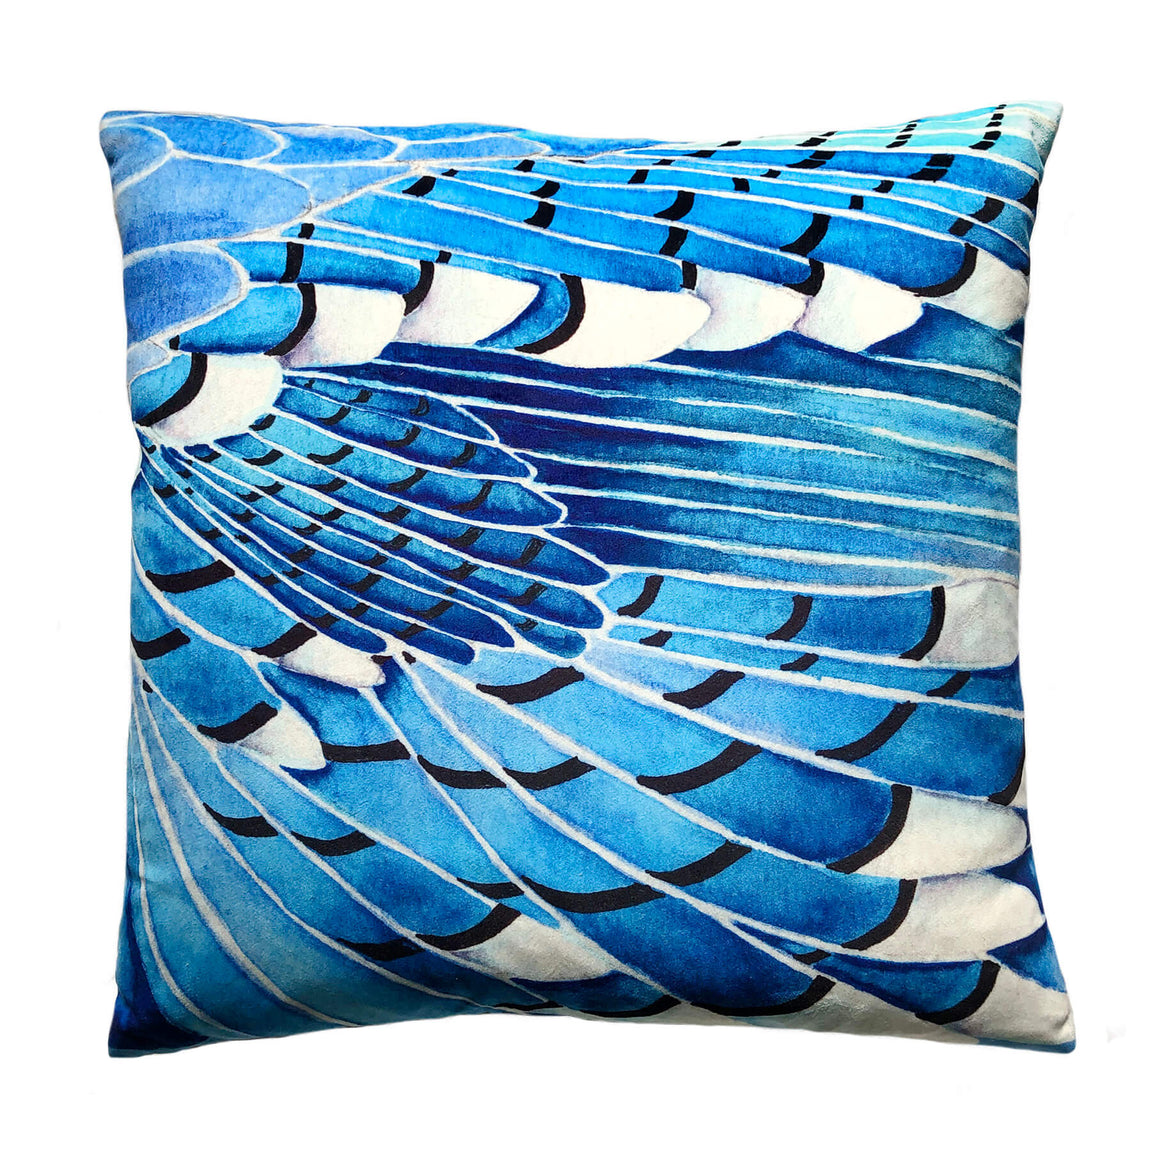 Blue Jay wing velvet cushion by Anna Jacobs